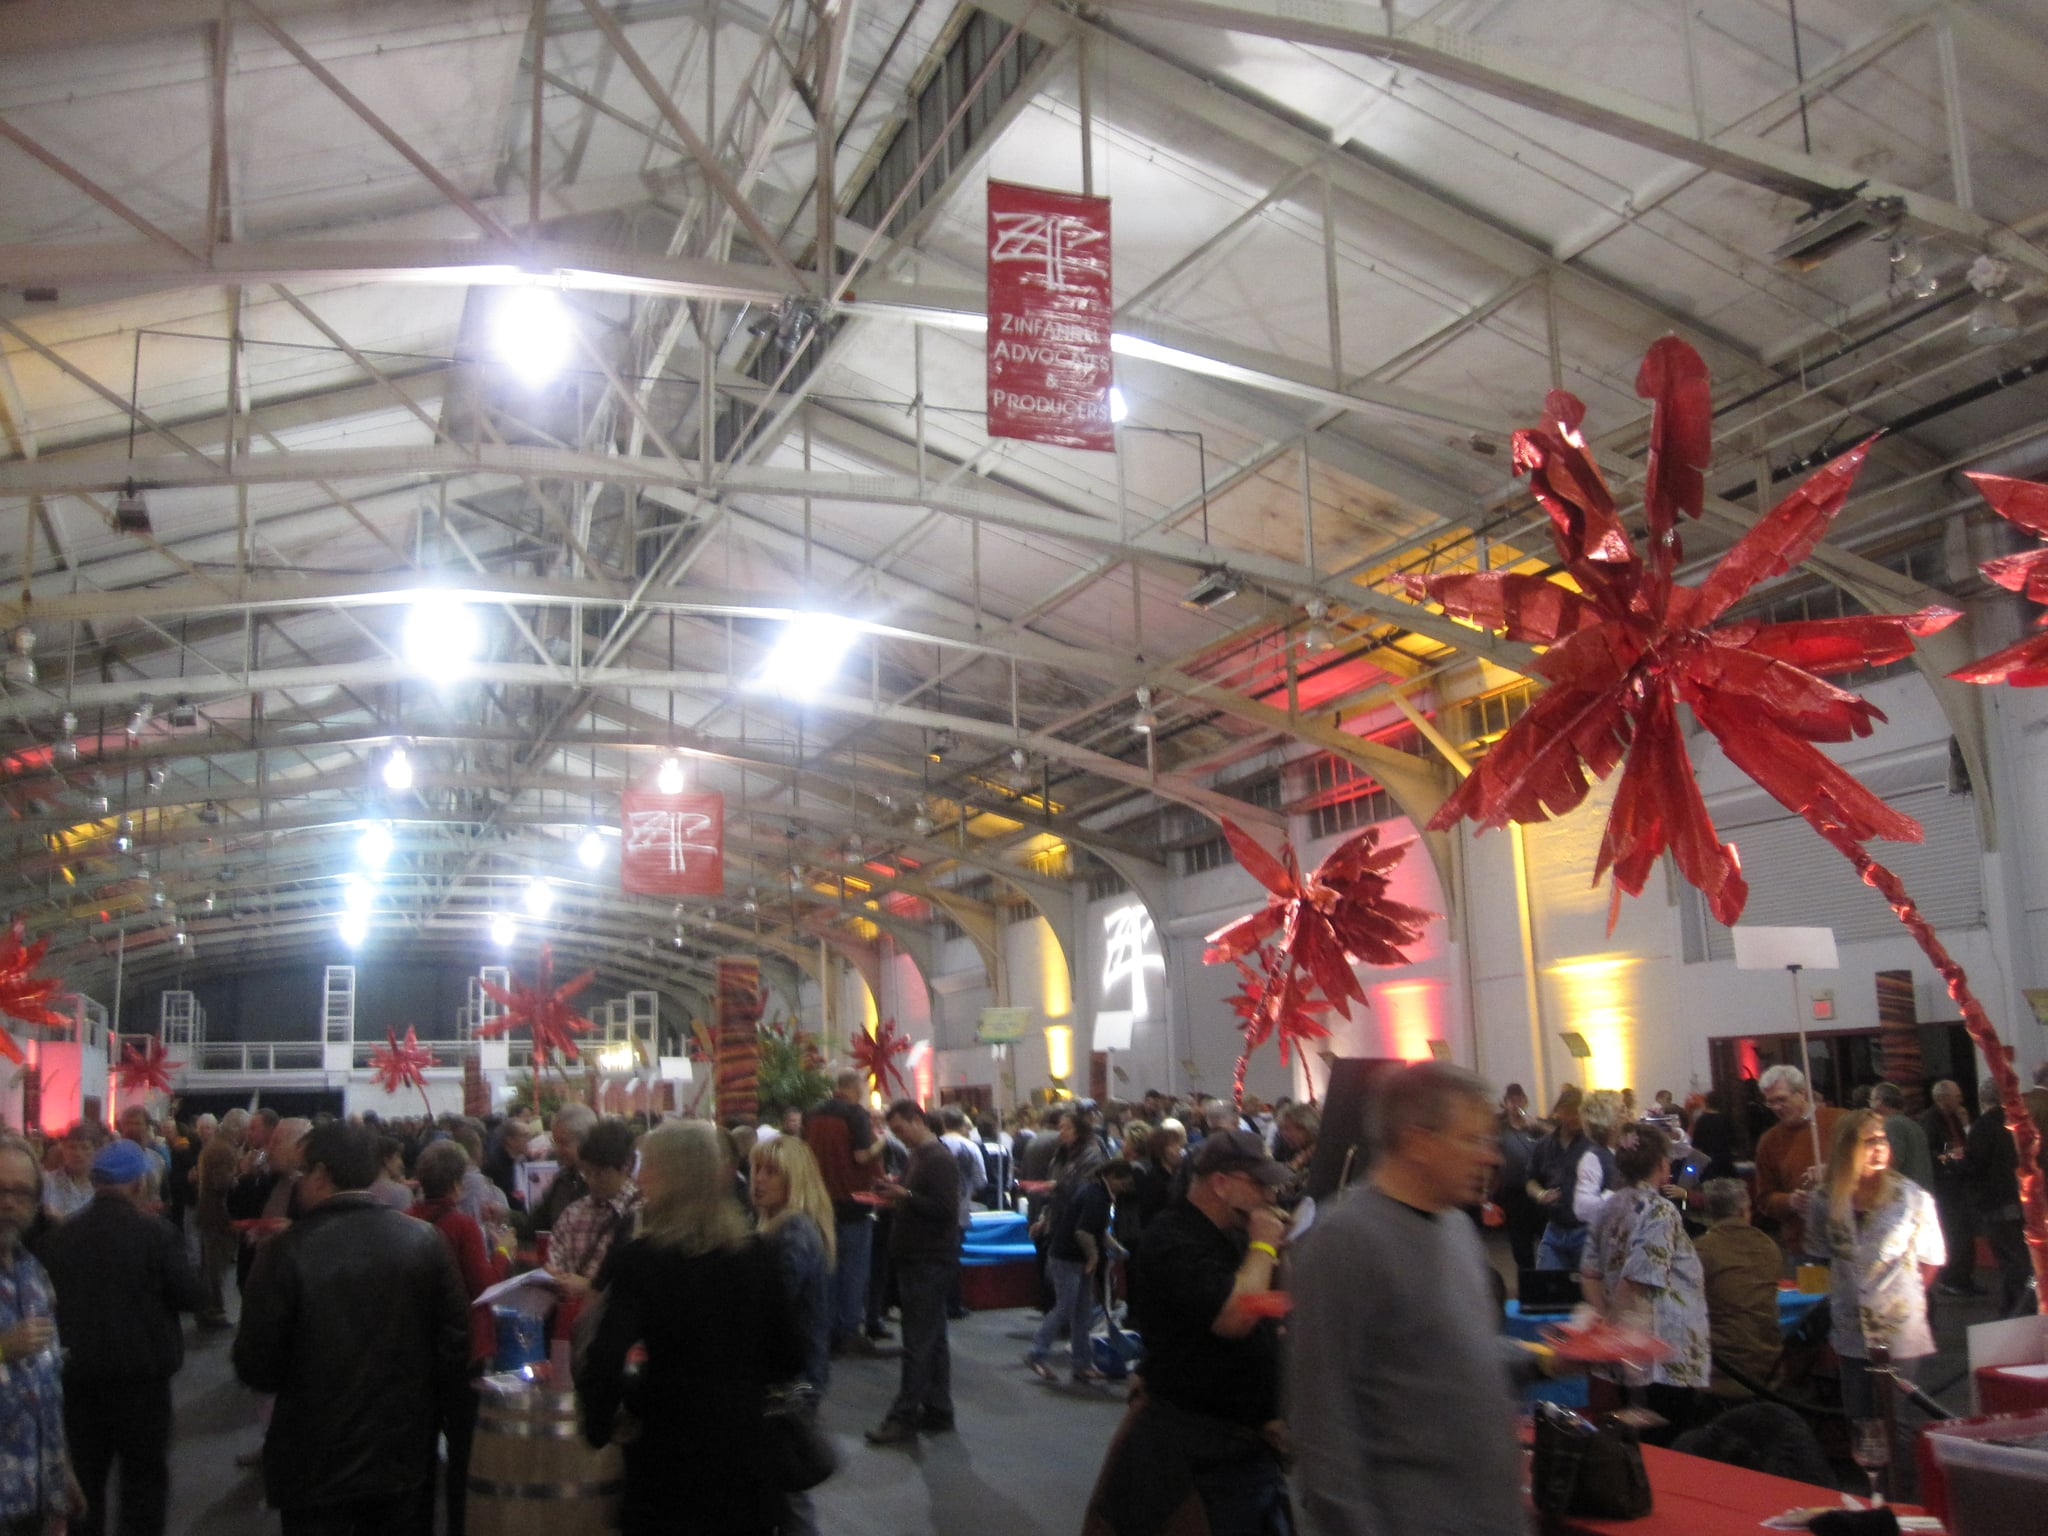 The theme for this year's festival, the 19th annual, was Zin in Paradise.